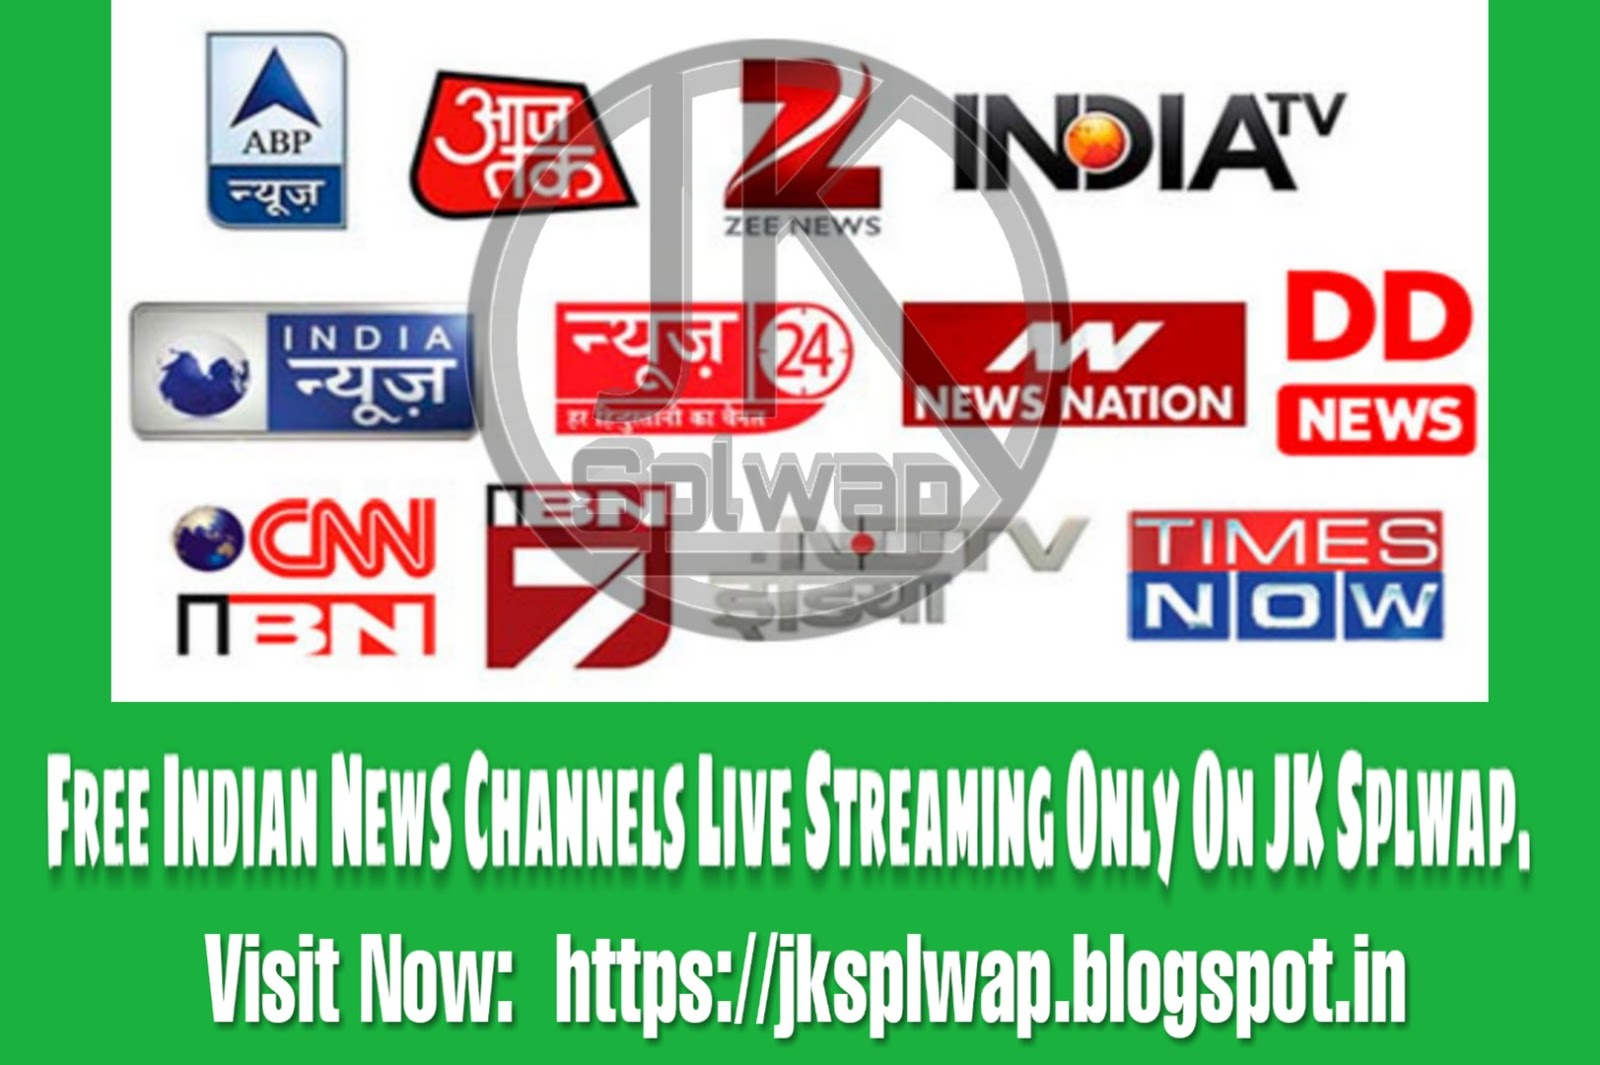 Indian News Channels Free Live Streaming Only On JK Splwap